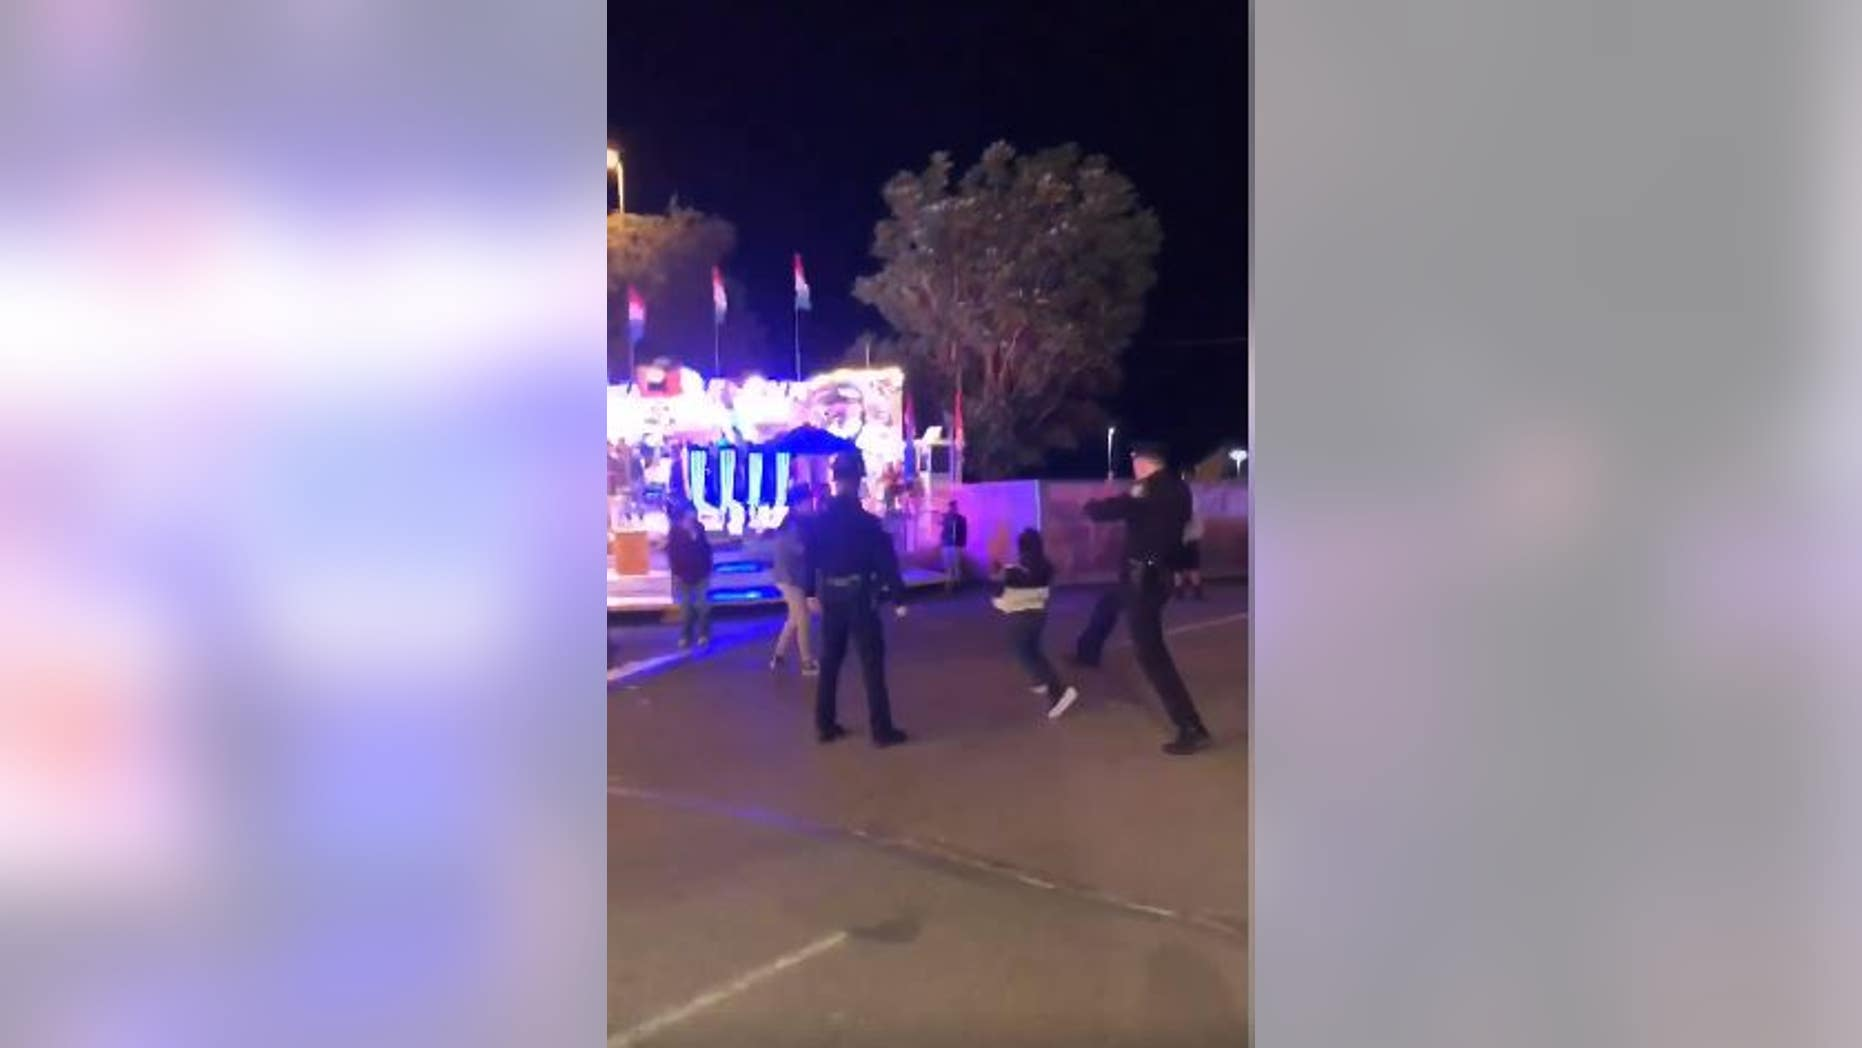 Washington police are investigating a controversial video that appears to show an officer kicking a boy in the back while breaking up a fight.